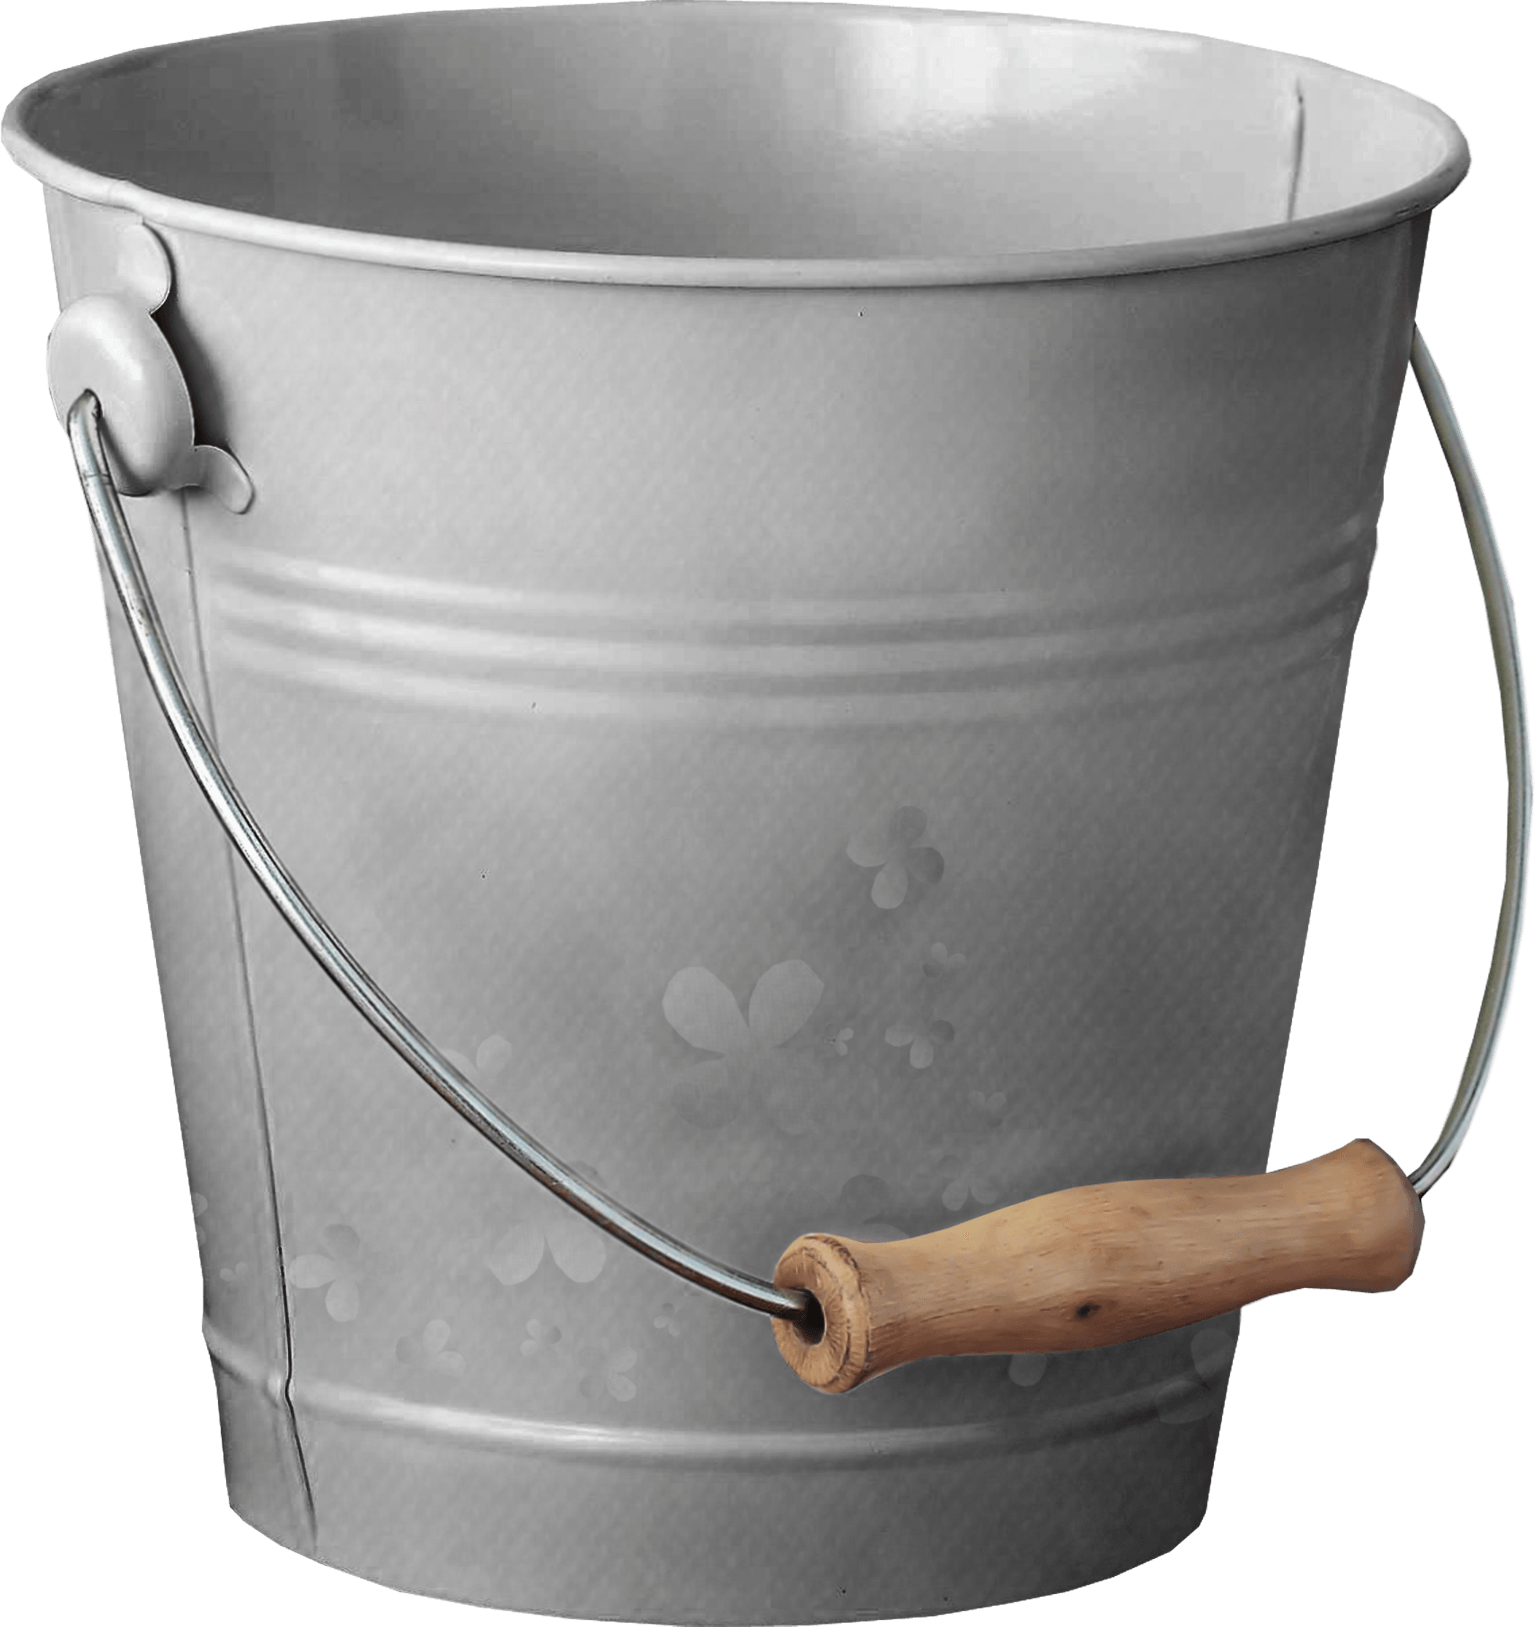 Iron Bucket Png Image Download PNG Image